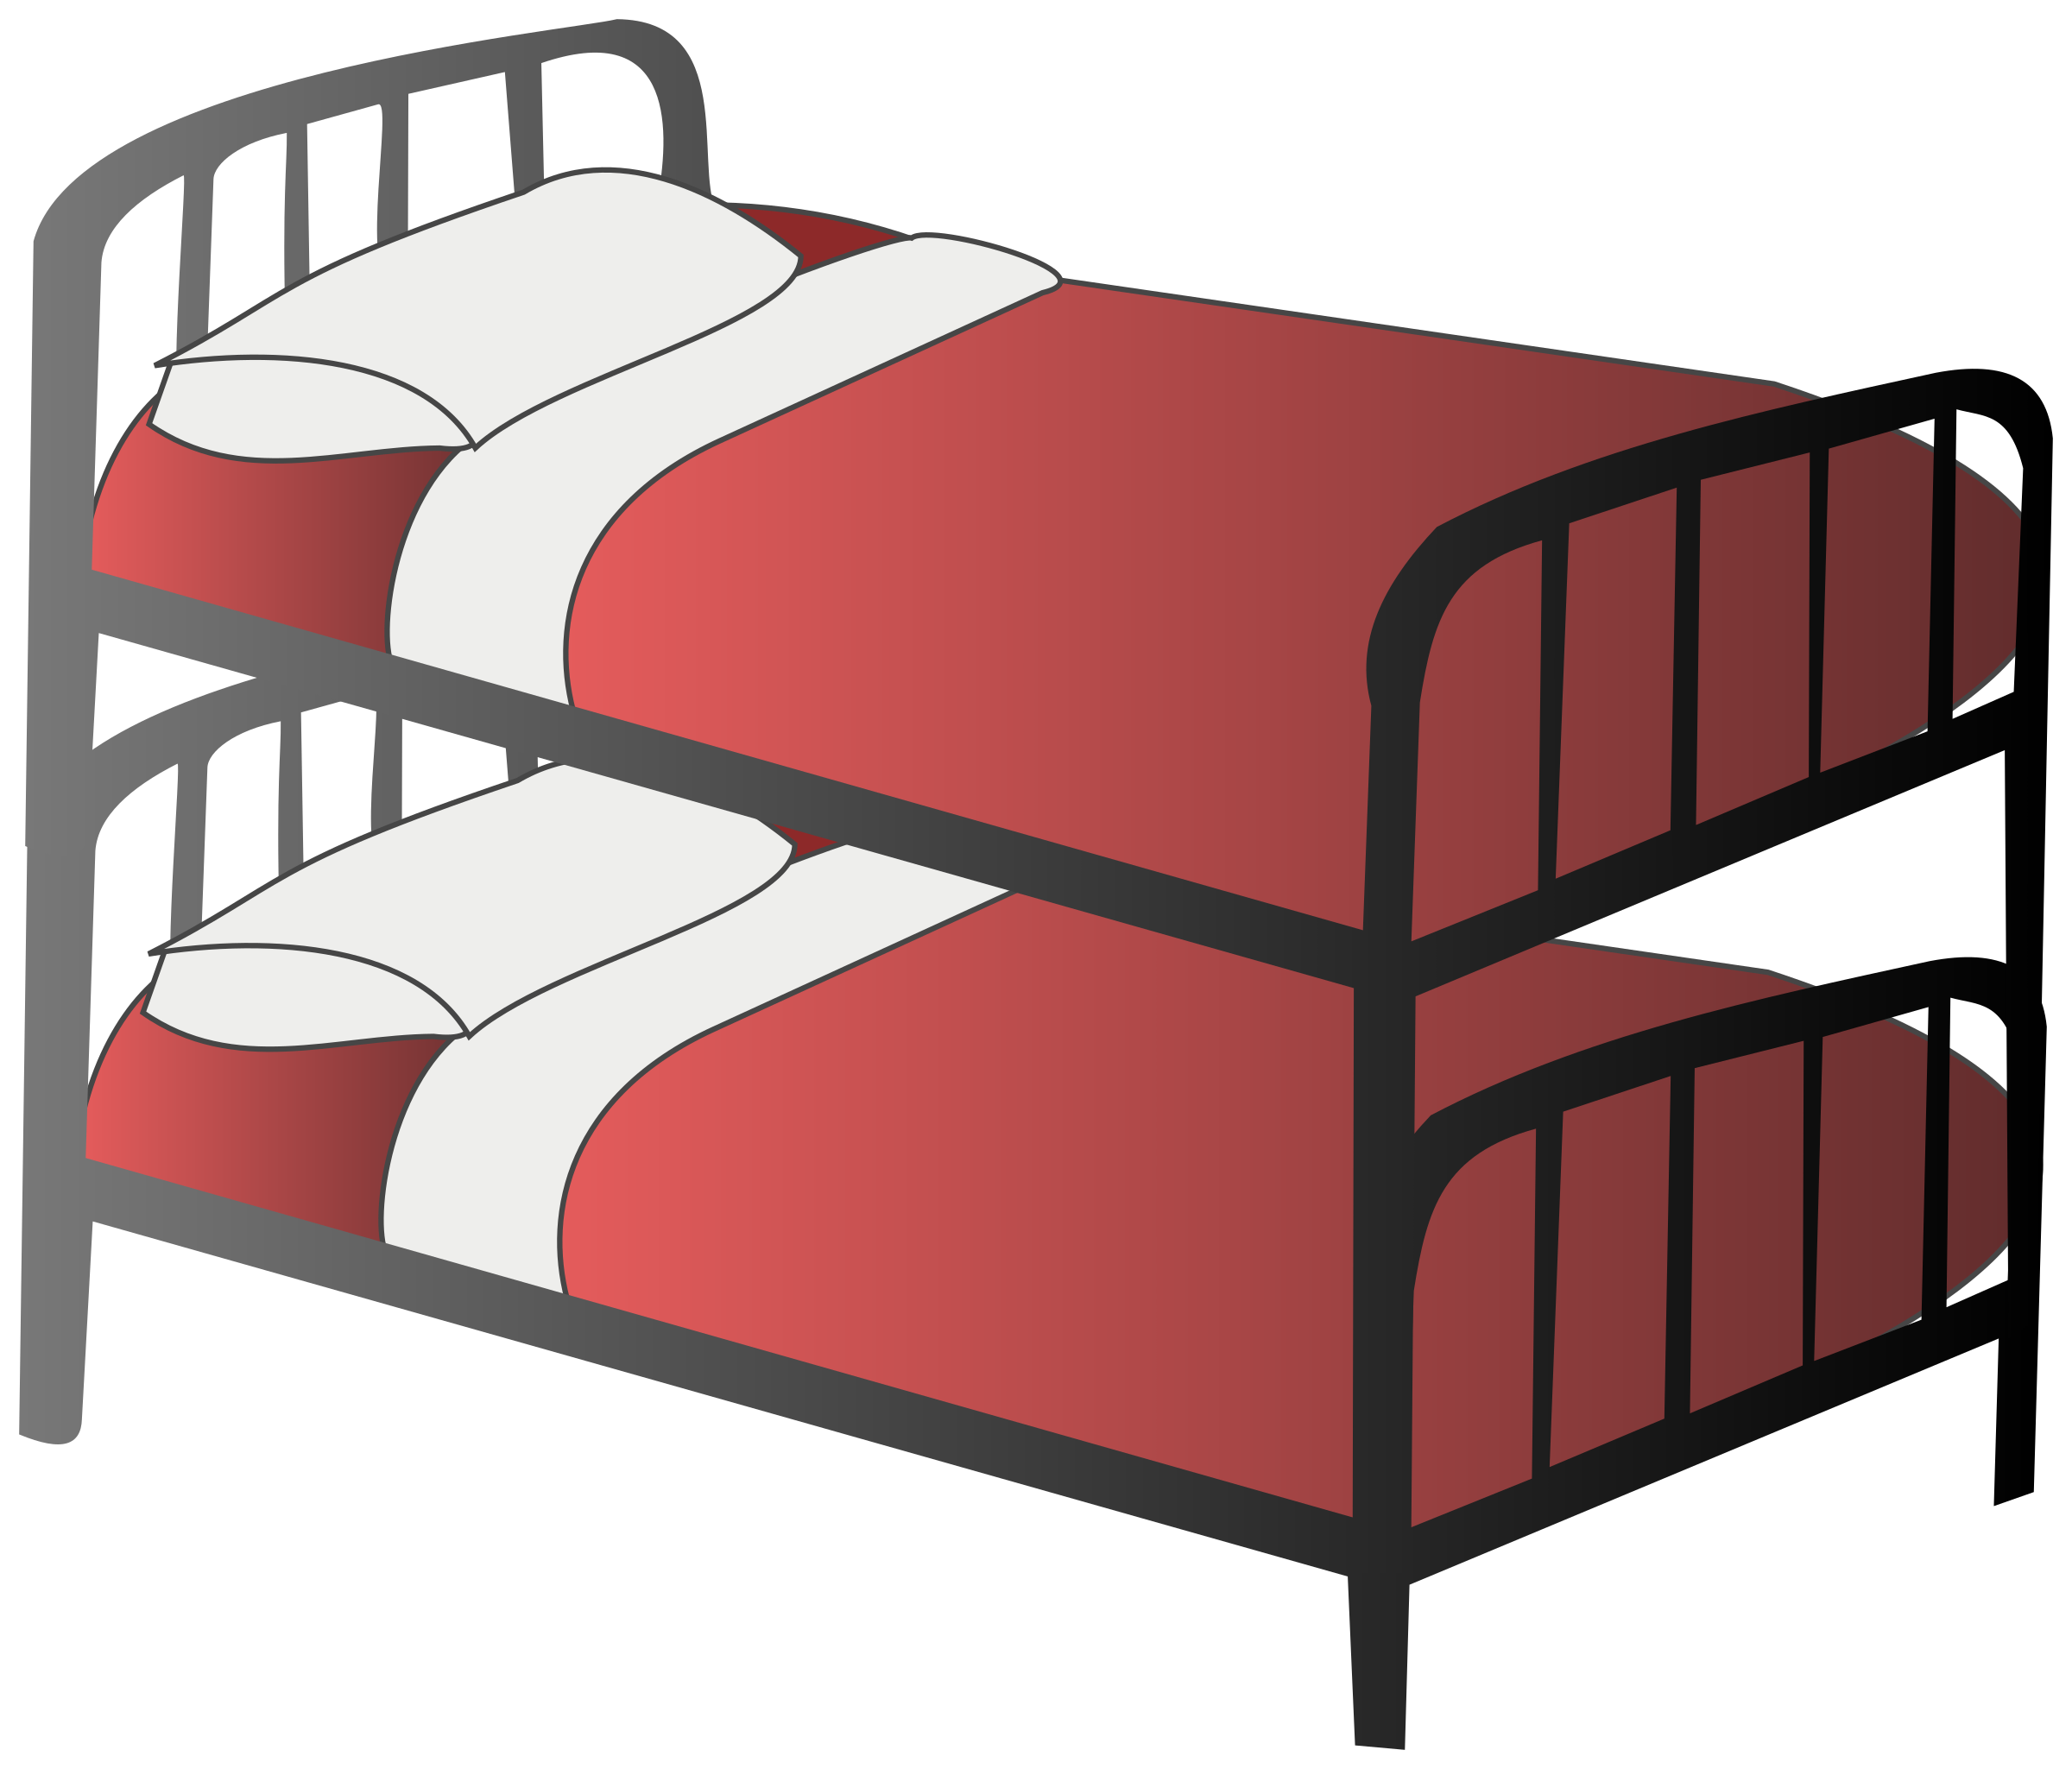 Pillow clipart bunkbed (PNG) Clipart bed IMAGE Bunk